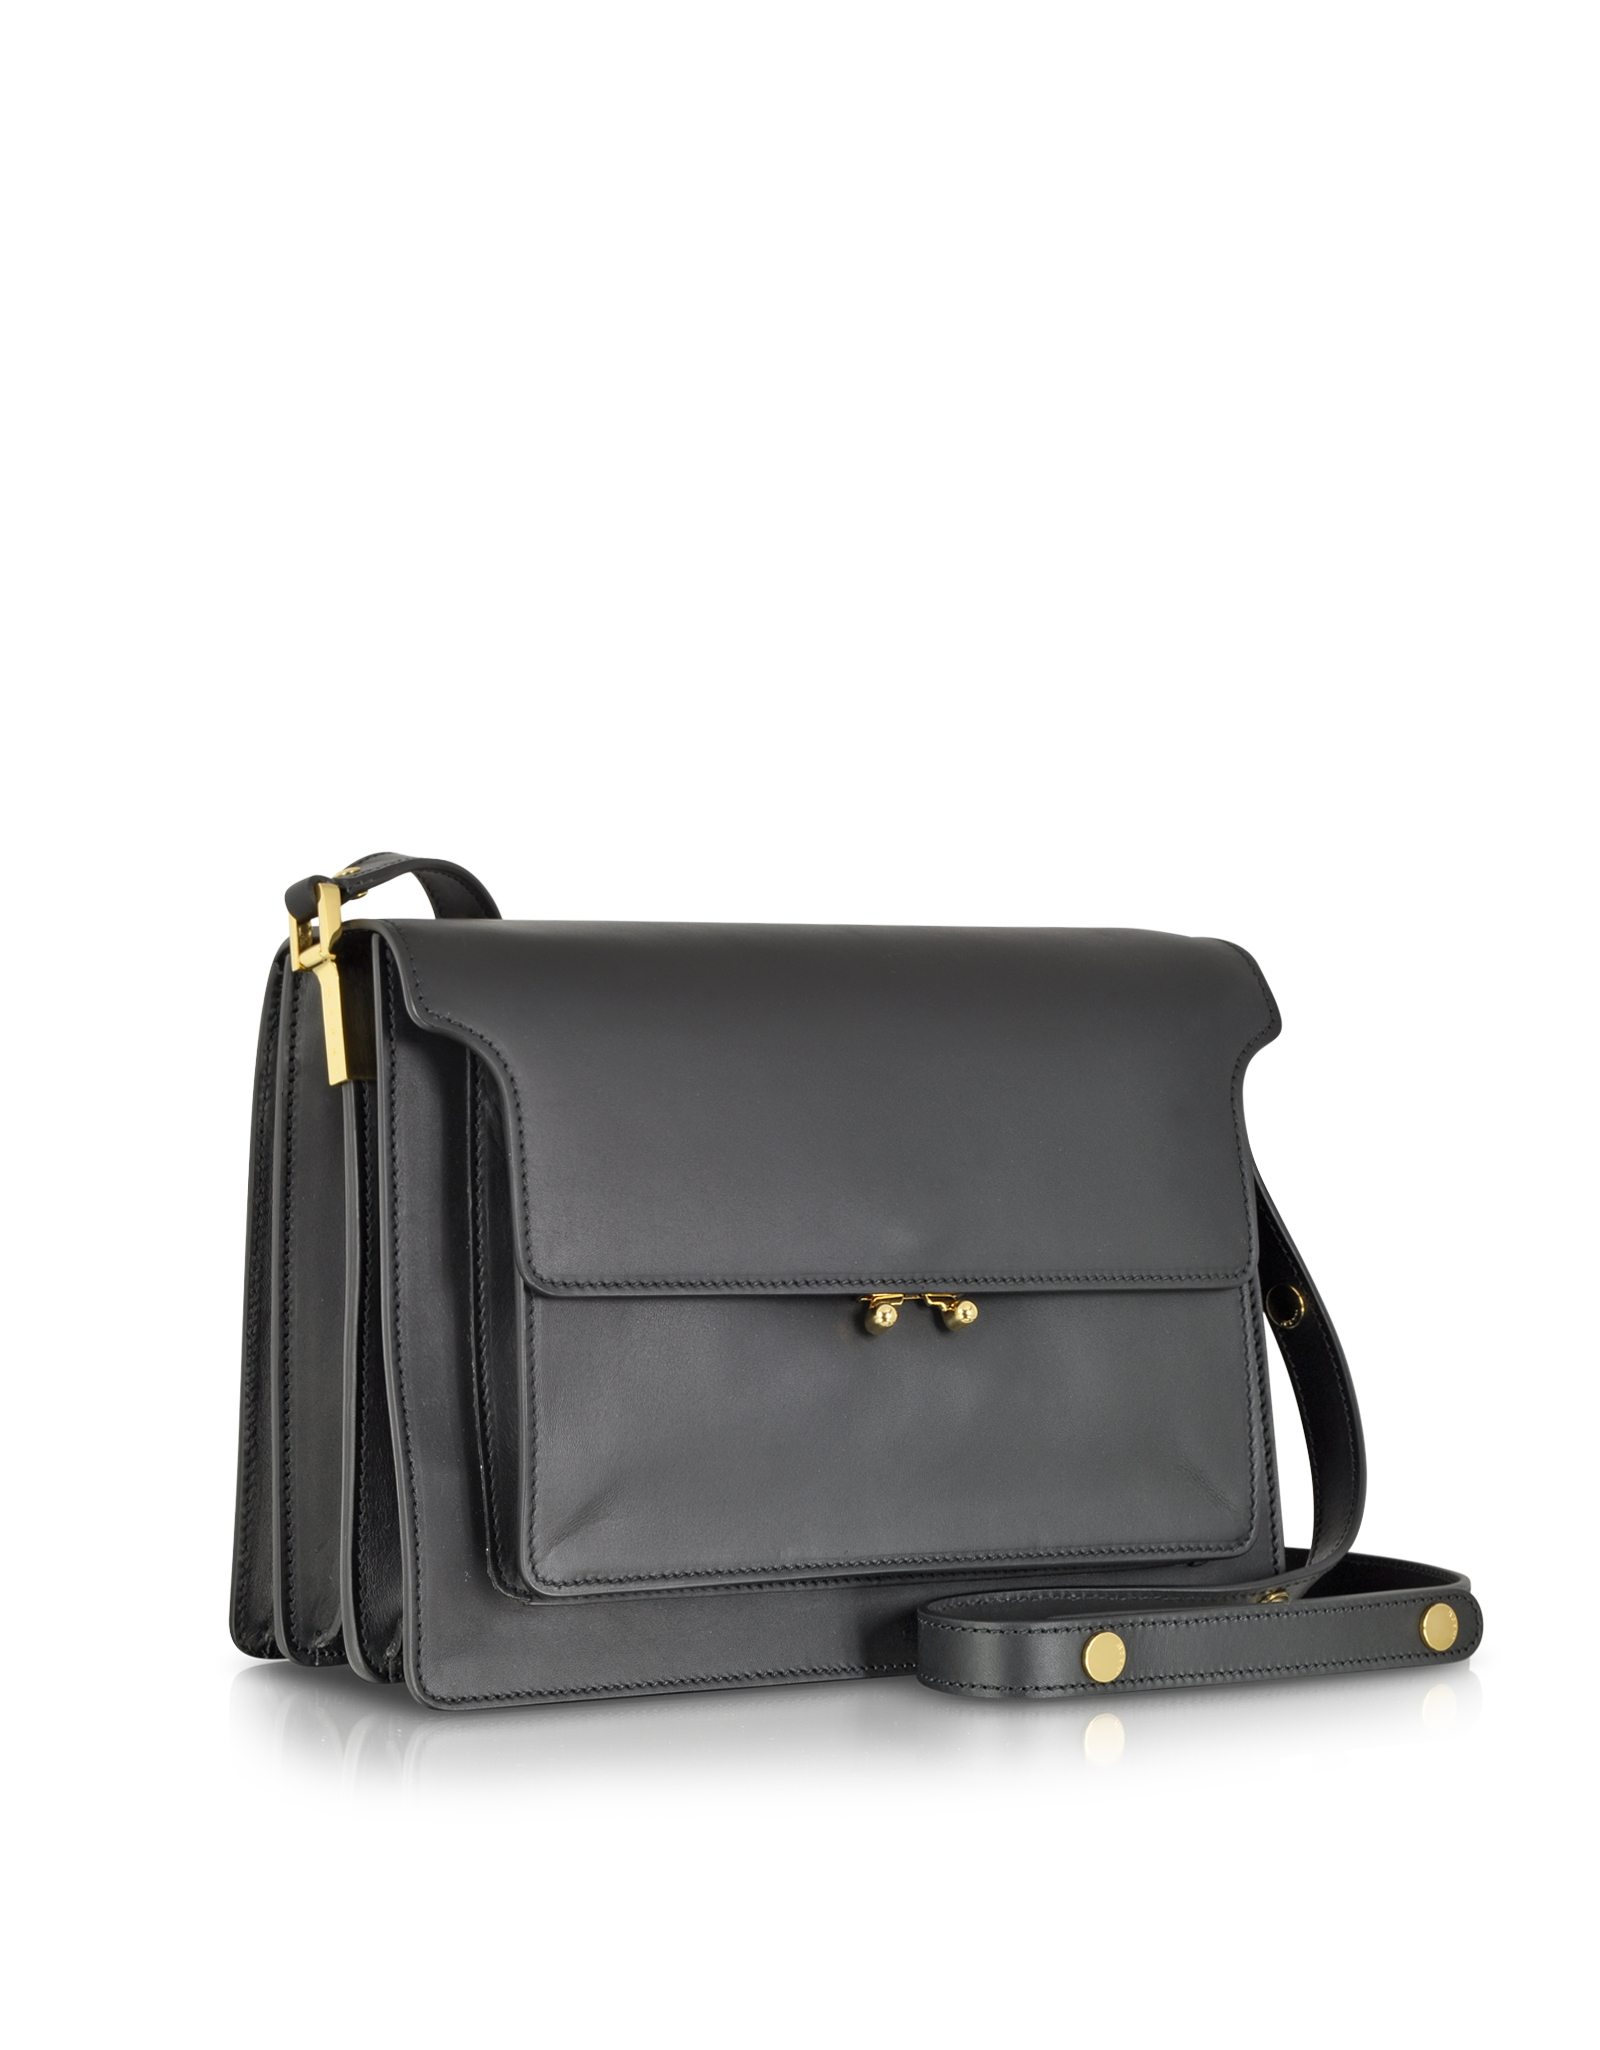 65f63a43d Marni Large Leather Trunk Bag in Black - Lyst